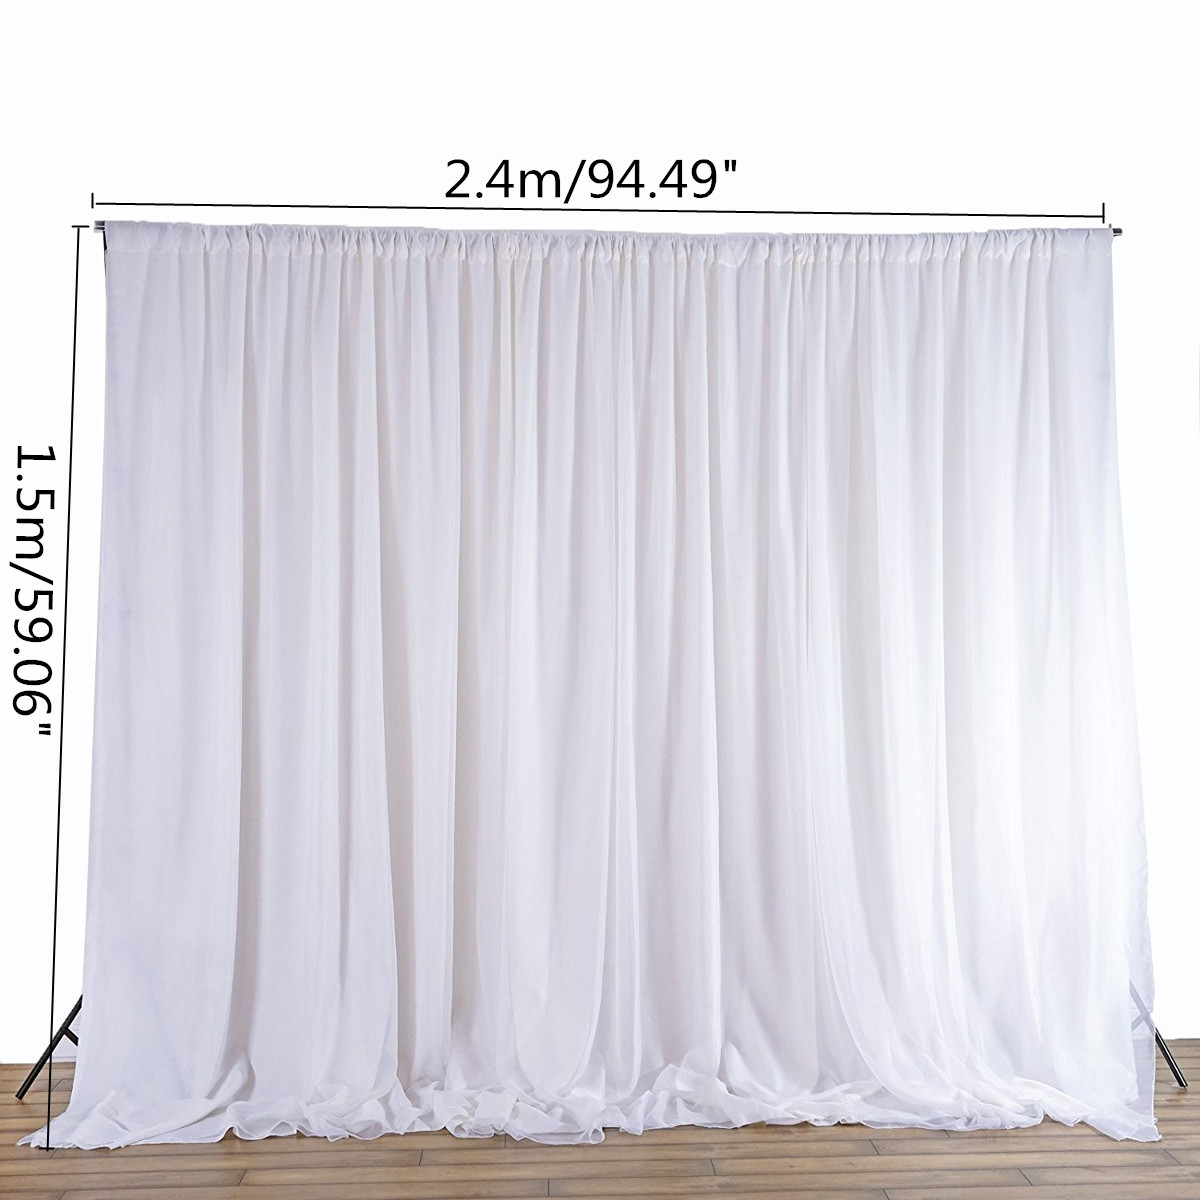 Curtain drapes for wedding